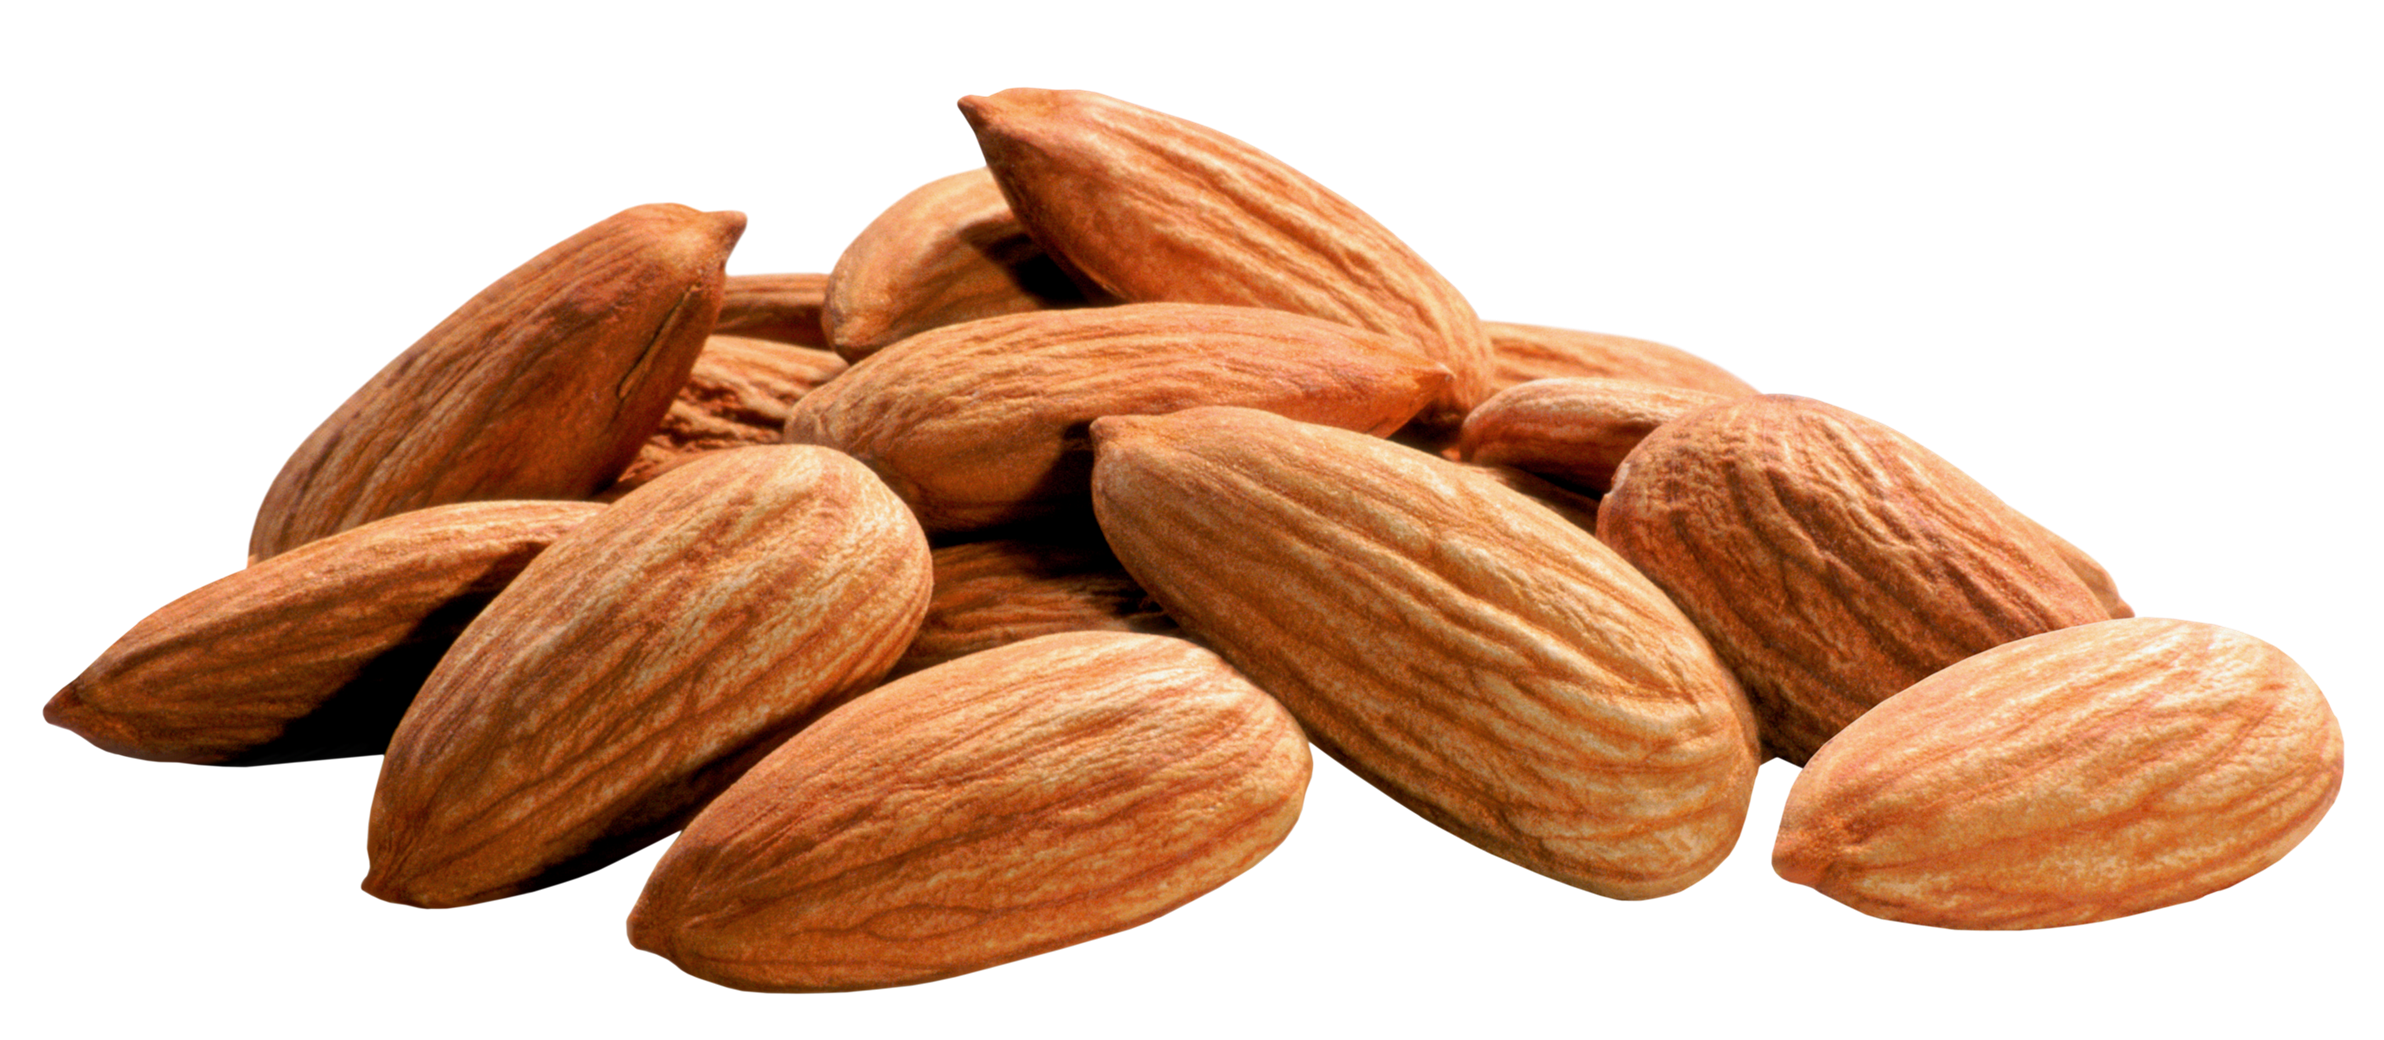 Download Almond PNG Image.